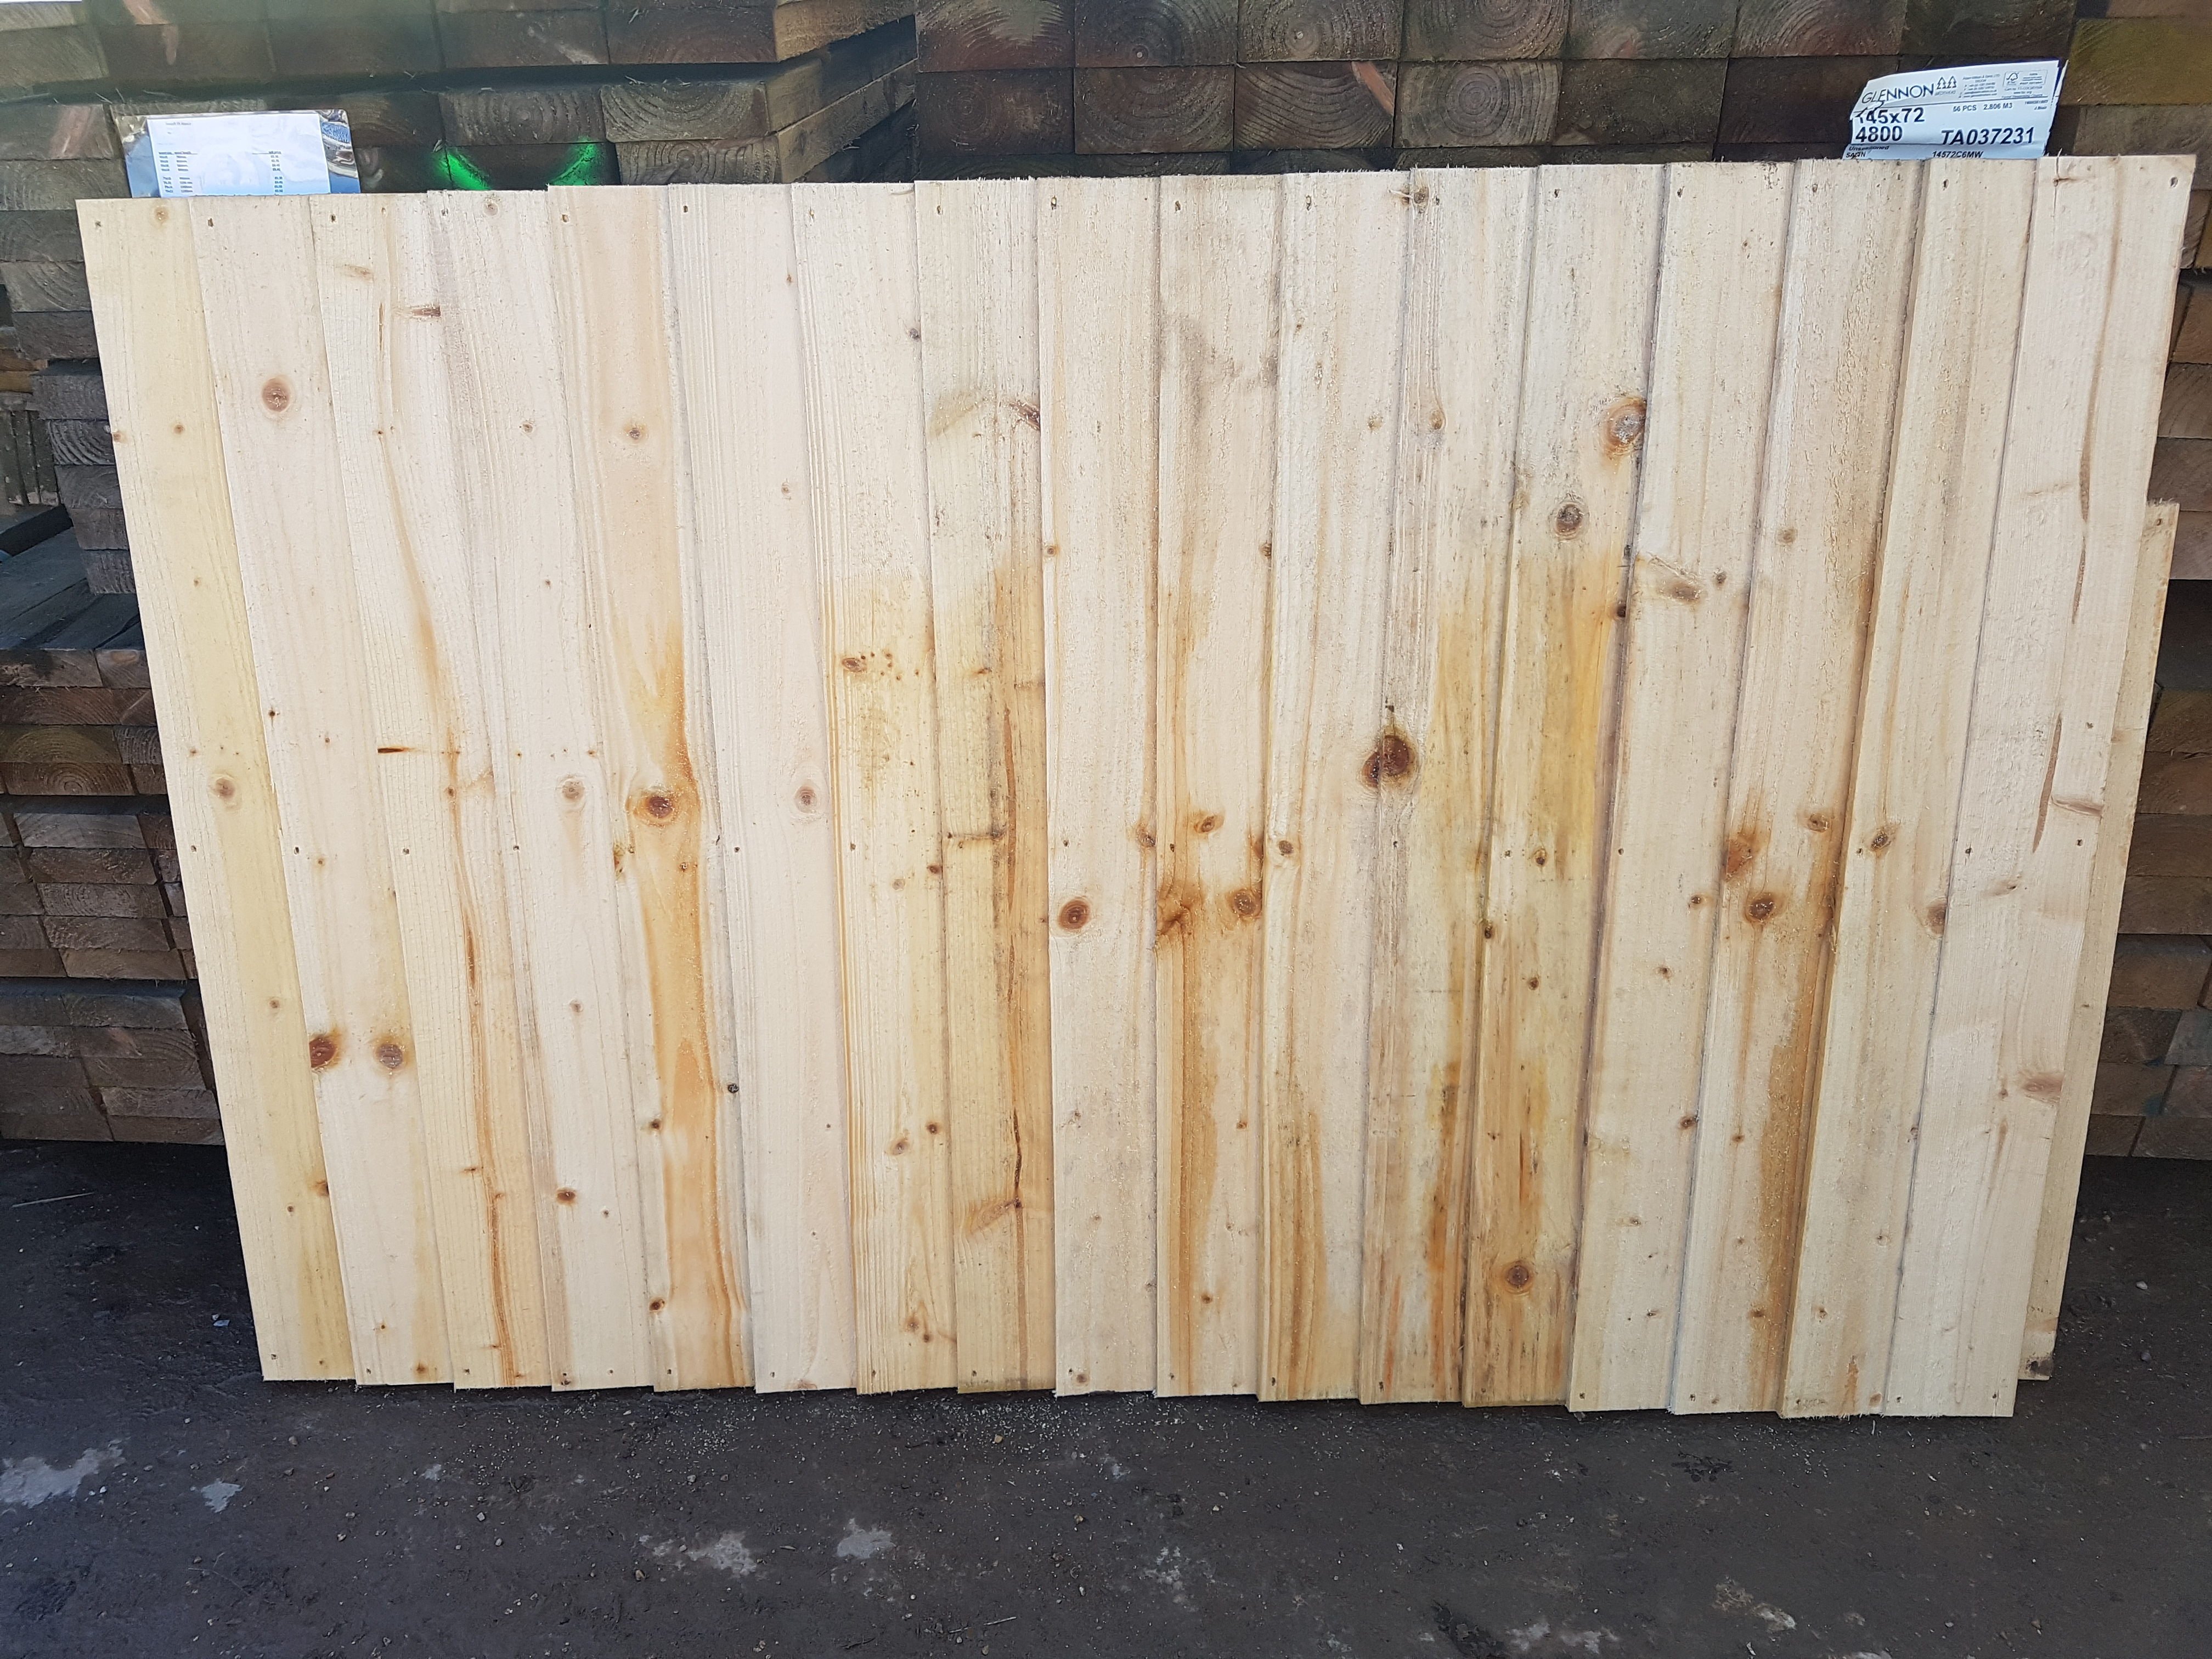 feather edge fence panels 4ft x 6ft in packs of 10 appriasal  untreated wood location  astley  cv